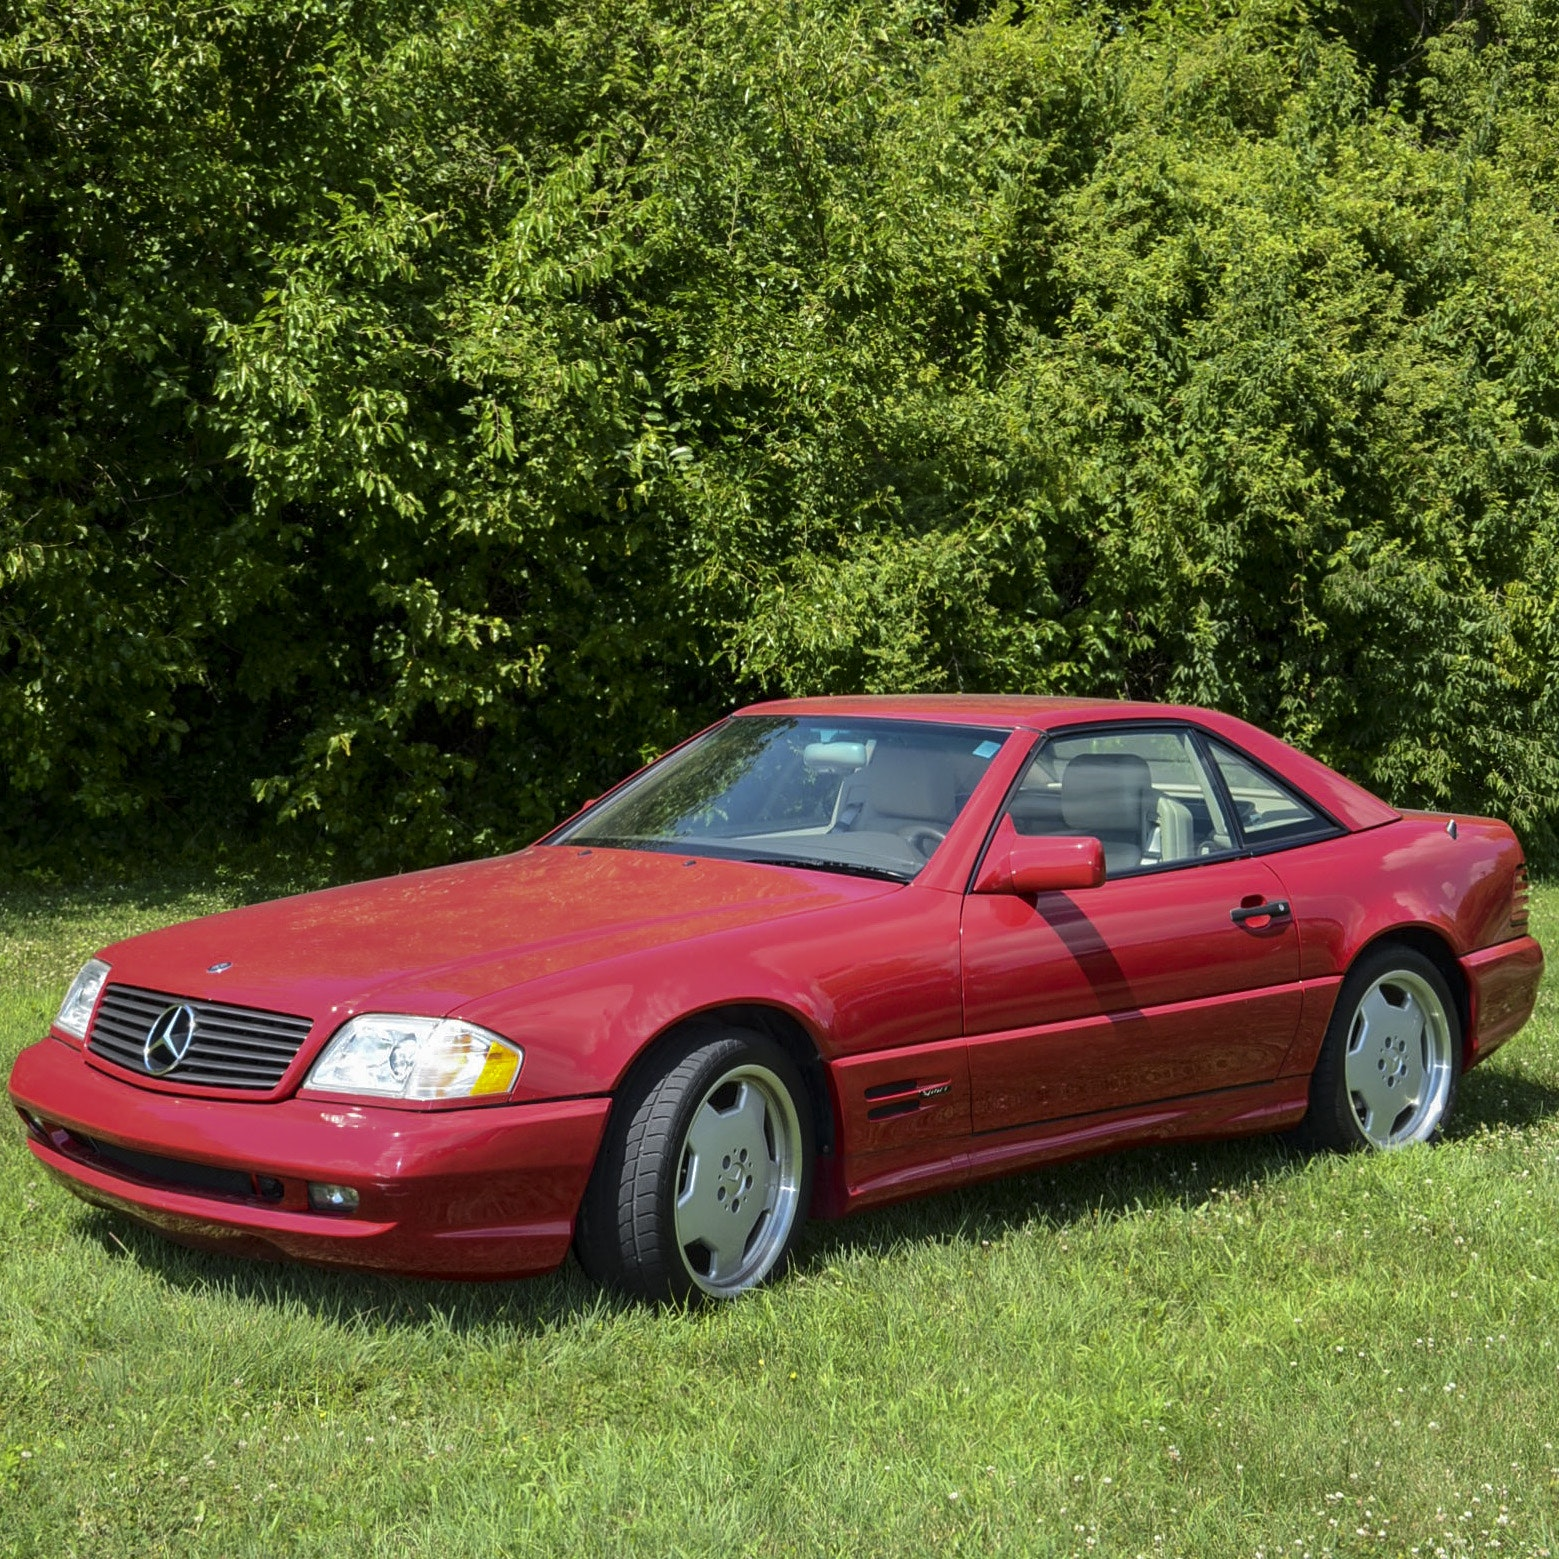 1996 Imperial Red Mercedes SL500 Sport Roadster